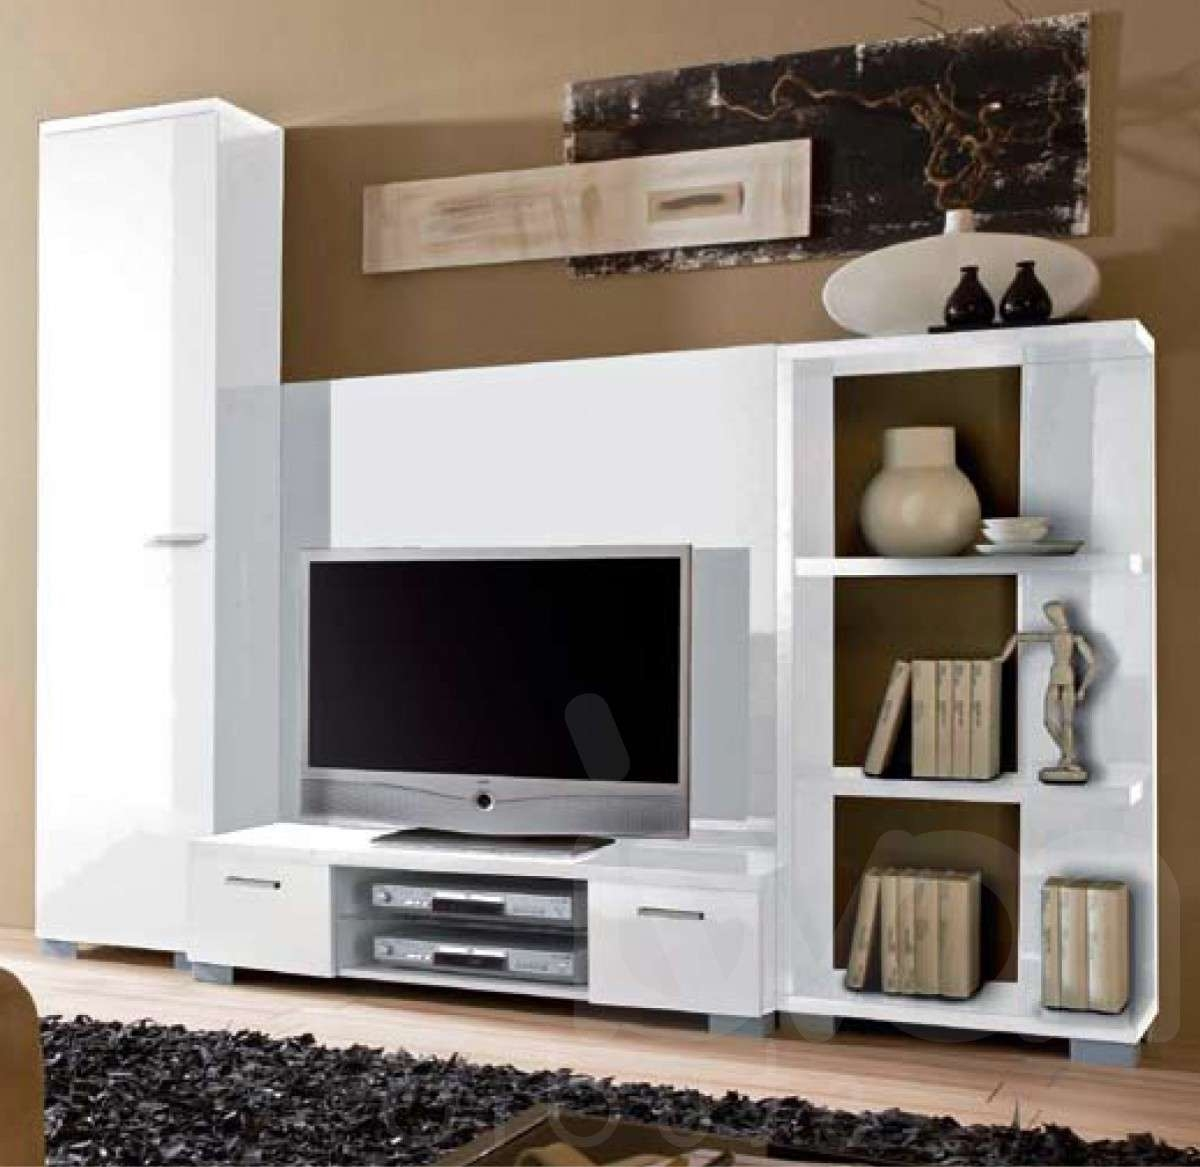 Modern Tv Cabinets And Wall Units – Wall Units Design Ideas Throughout Tv Cabinets With Storage (View 16 of 20)